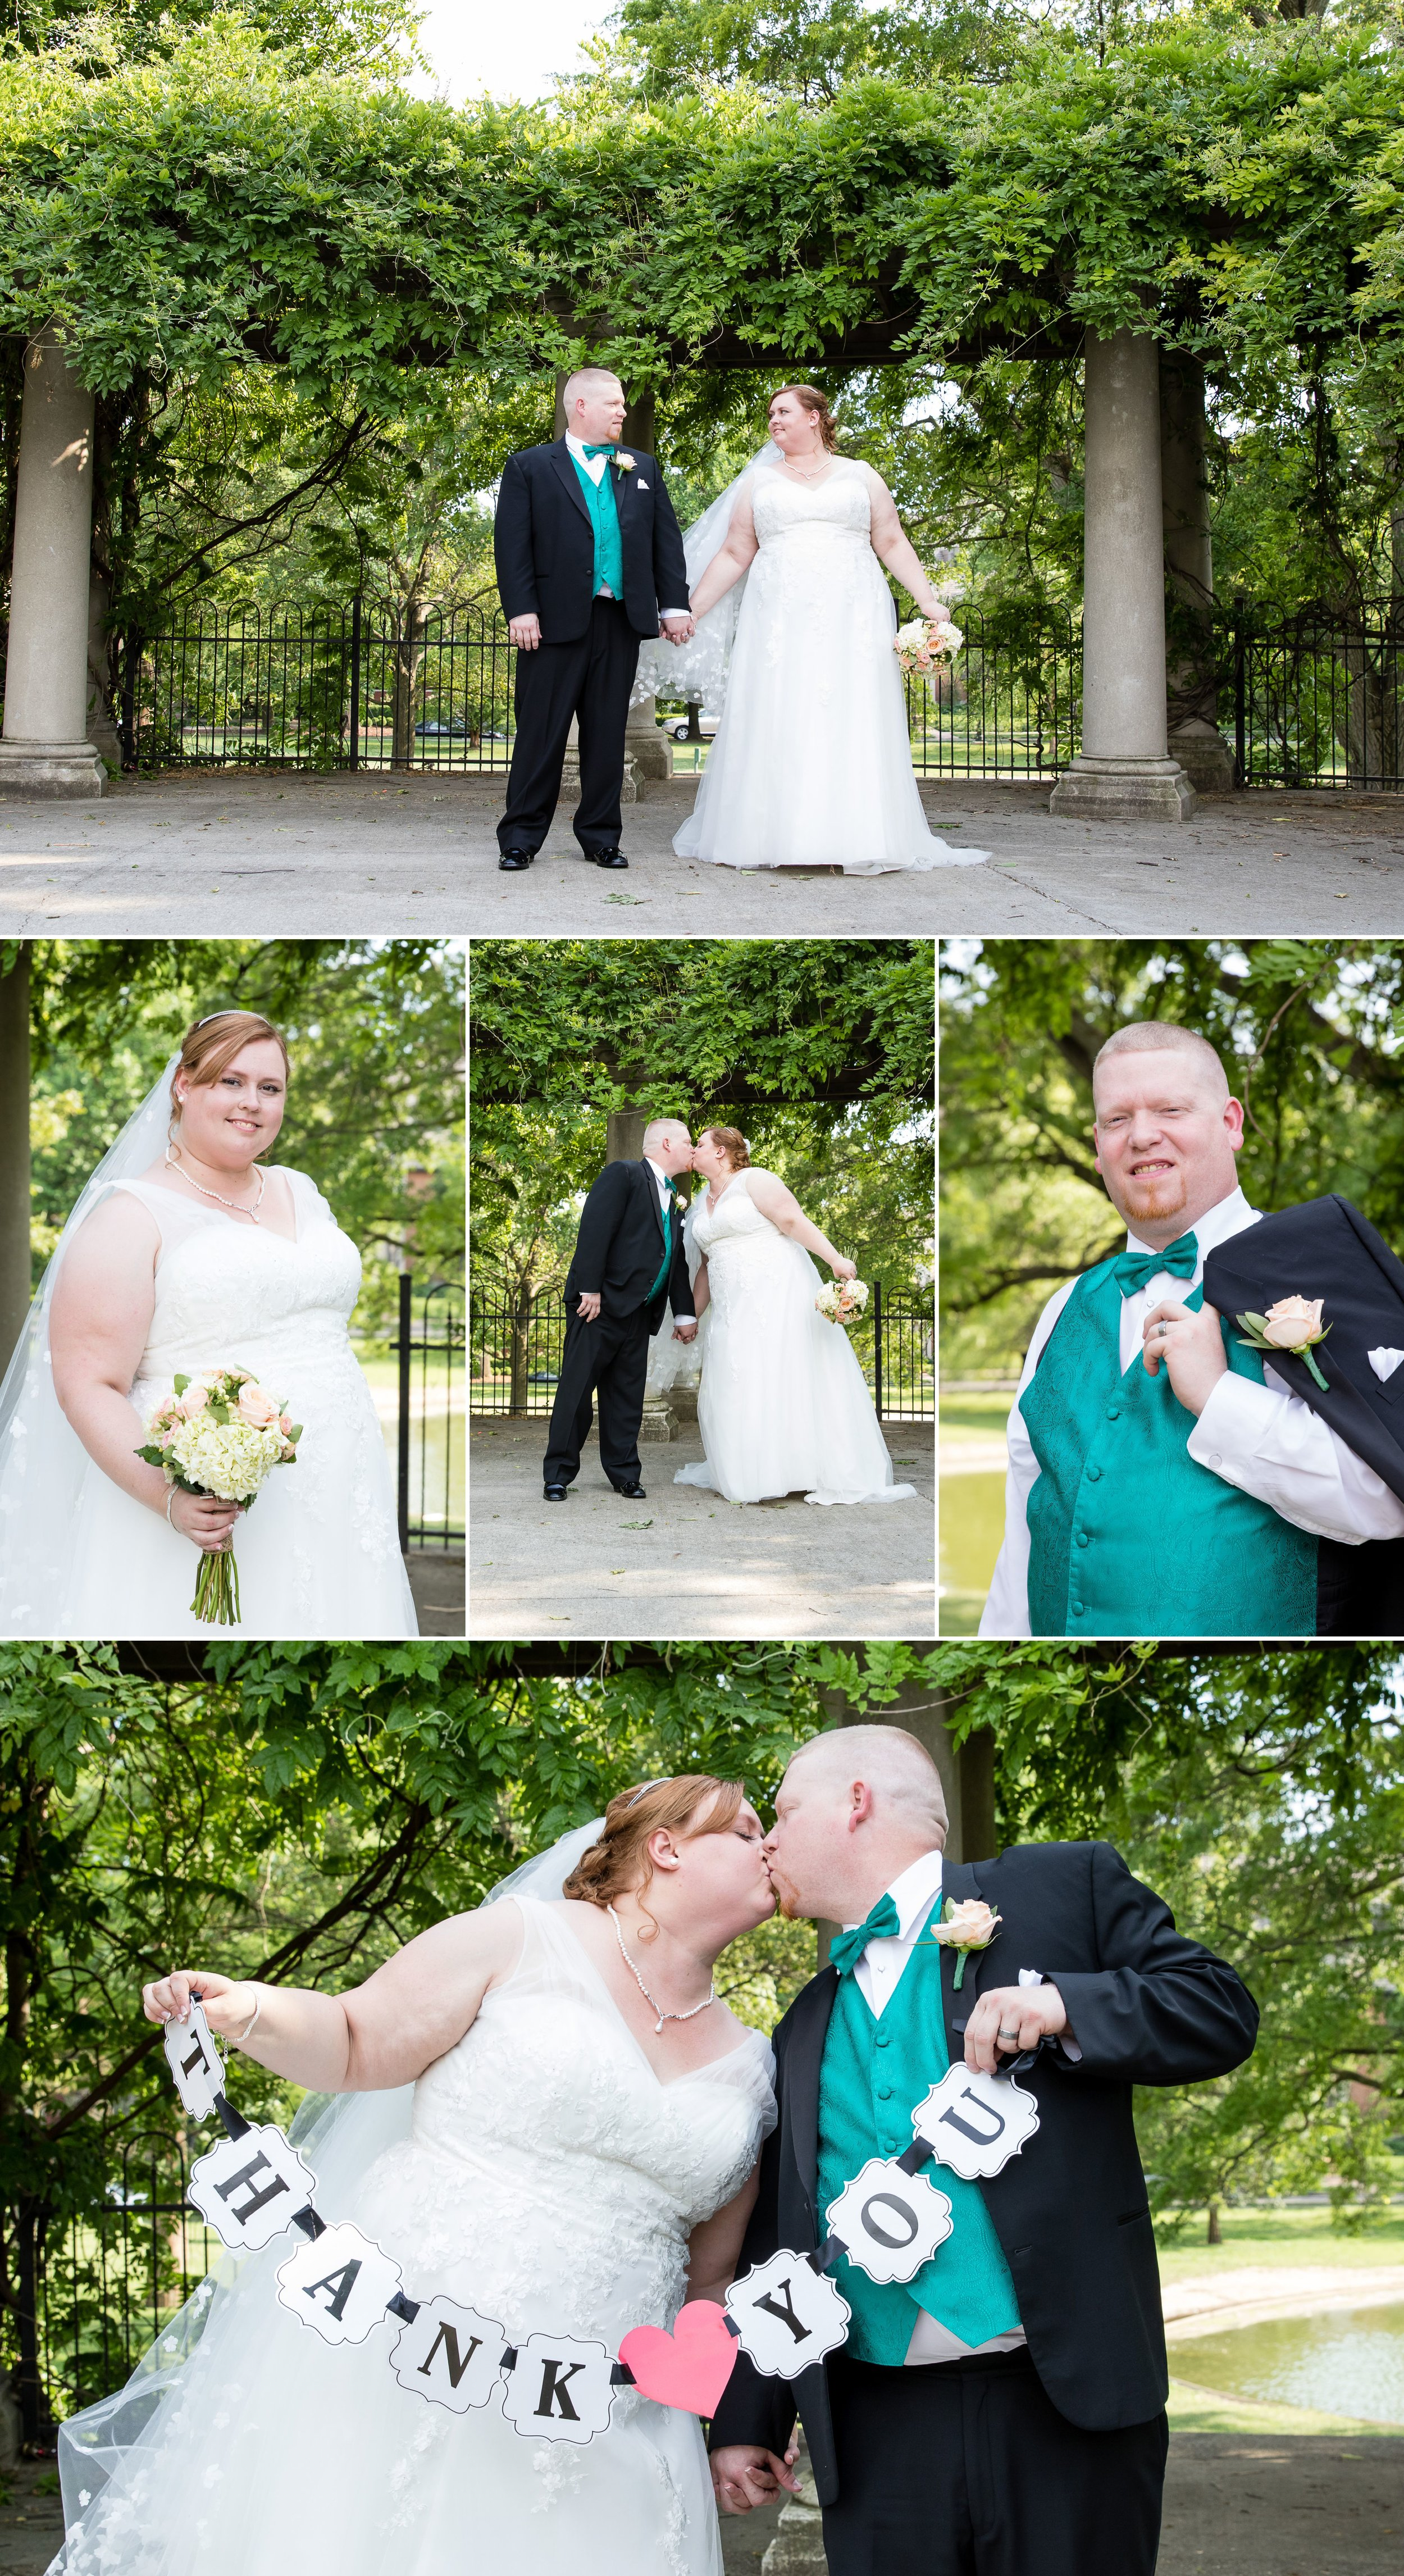 lighthouse-christian-ministries-wedding-ceremony-schiller-park-portraits-columbus-ohio-muschlitz-photography-012.JPG